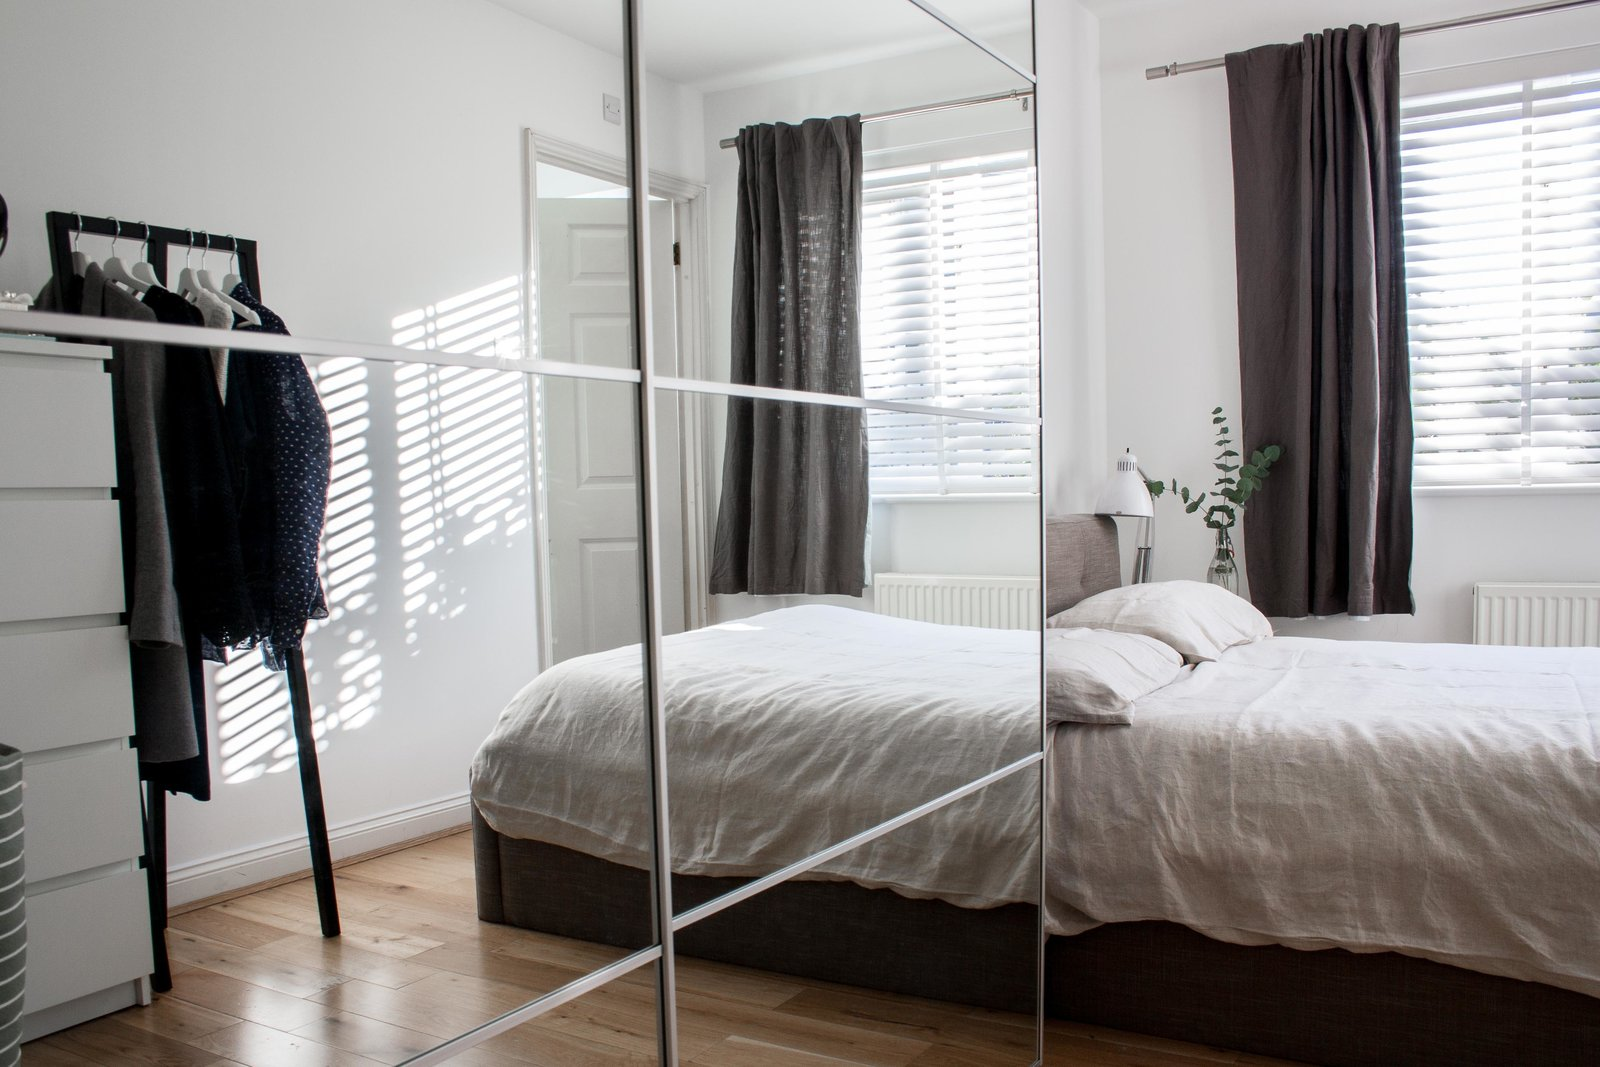 To create more storage and make the small bedroom feel larger, they purchased an Ikea wardrobe with mirrored doors. The clothing rack across from the bed is from HAY. Tagged: Bedroom, Bed, Night Stands, Lamps, Table Lighting, Light Hardwood Floor, and Wardrobe.  Photo 6 of 8 in Two Architects Revive Their London Flat With Minimal Furnishings and a Fresh Dose of White